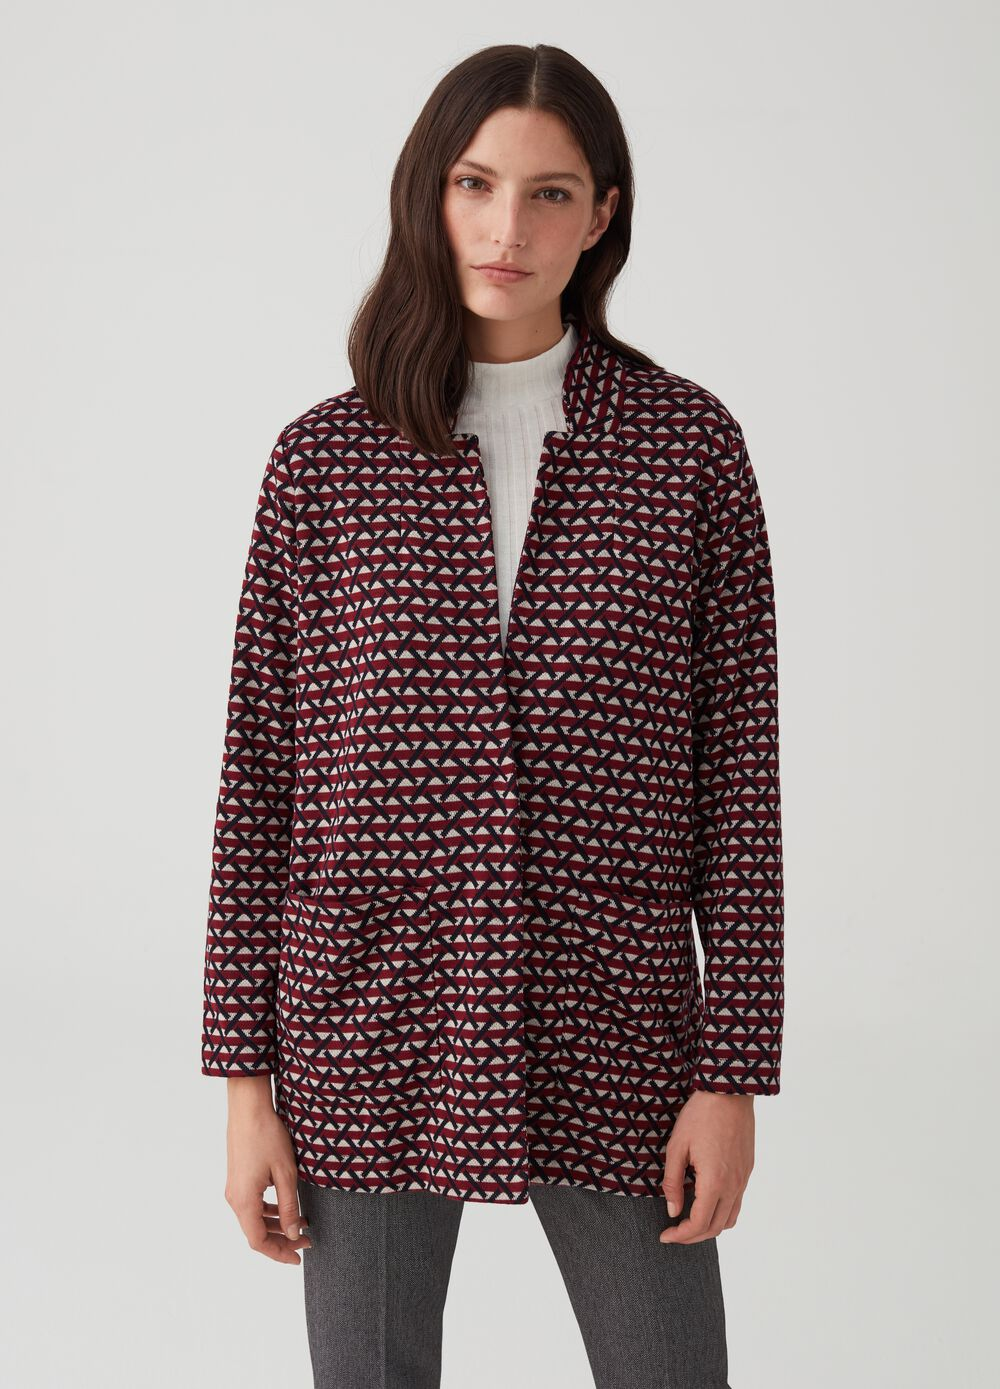 Cardigan with lapels and geometric pattern